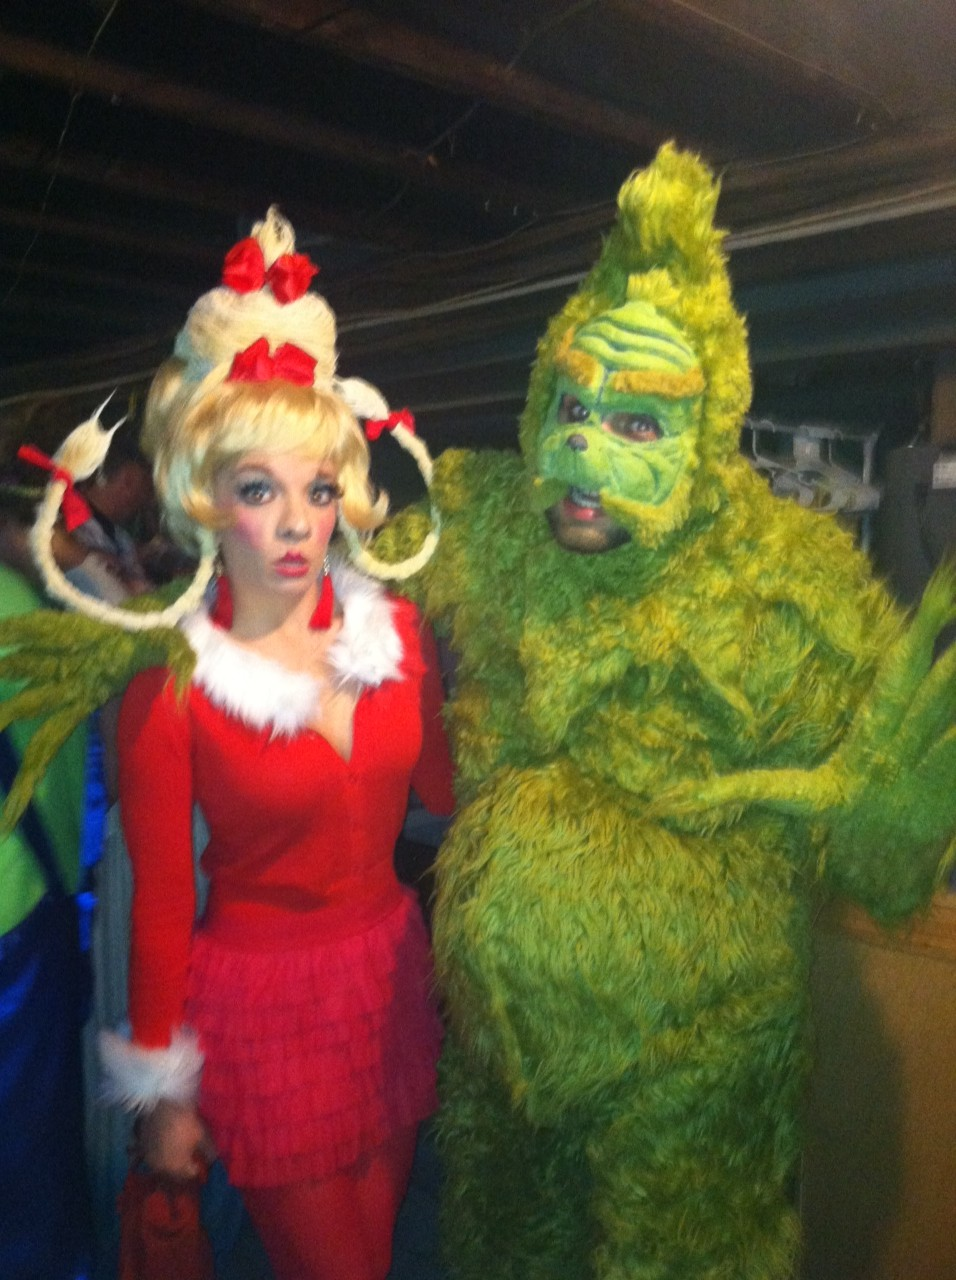 ae8751707 Adam Kreutinger Halloween The Grinch Who Stole Christmas Sc 1 St Meningrey